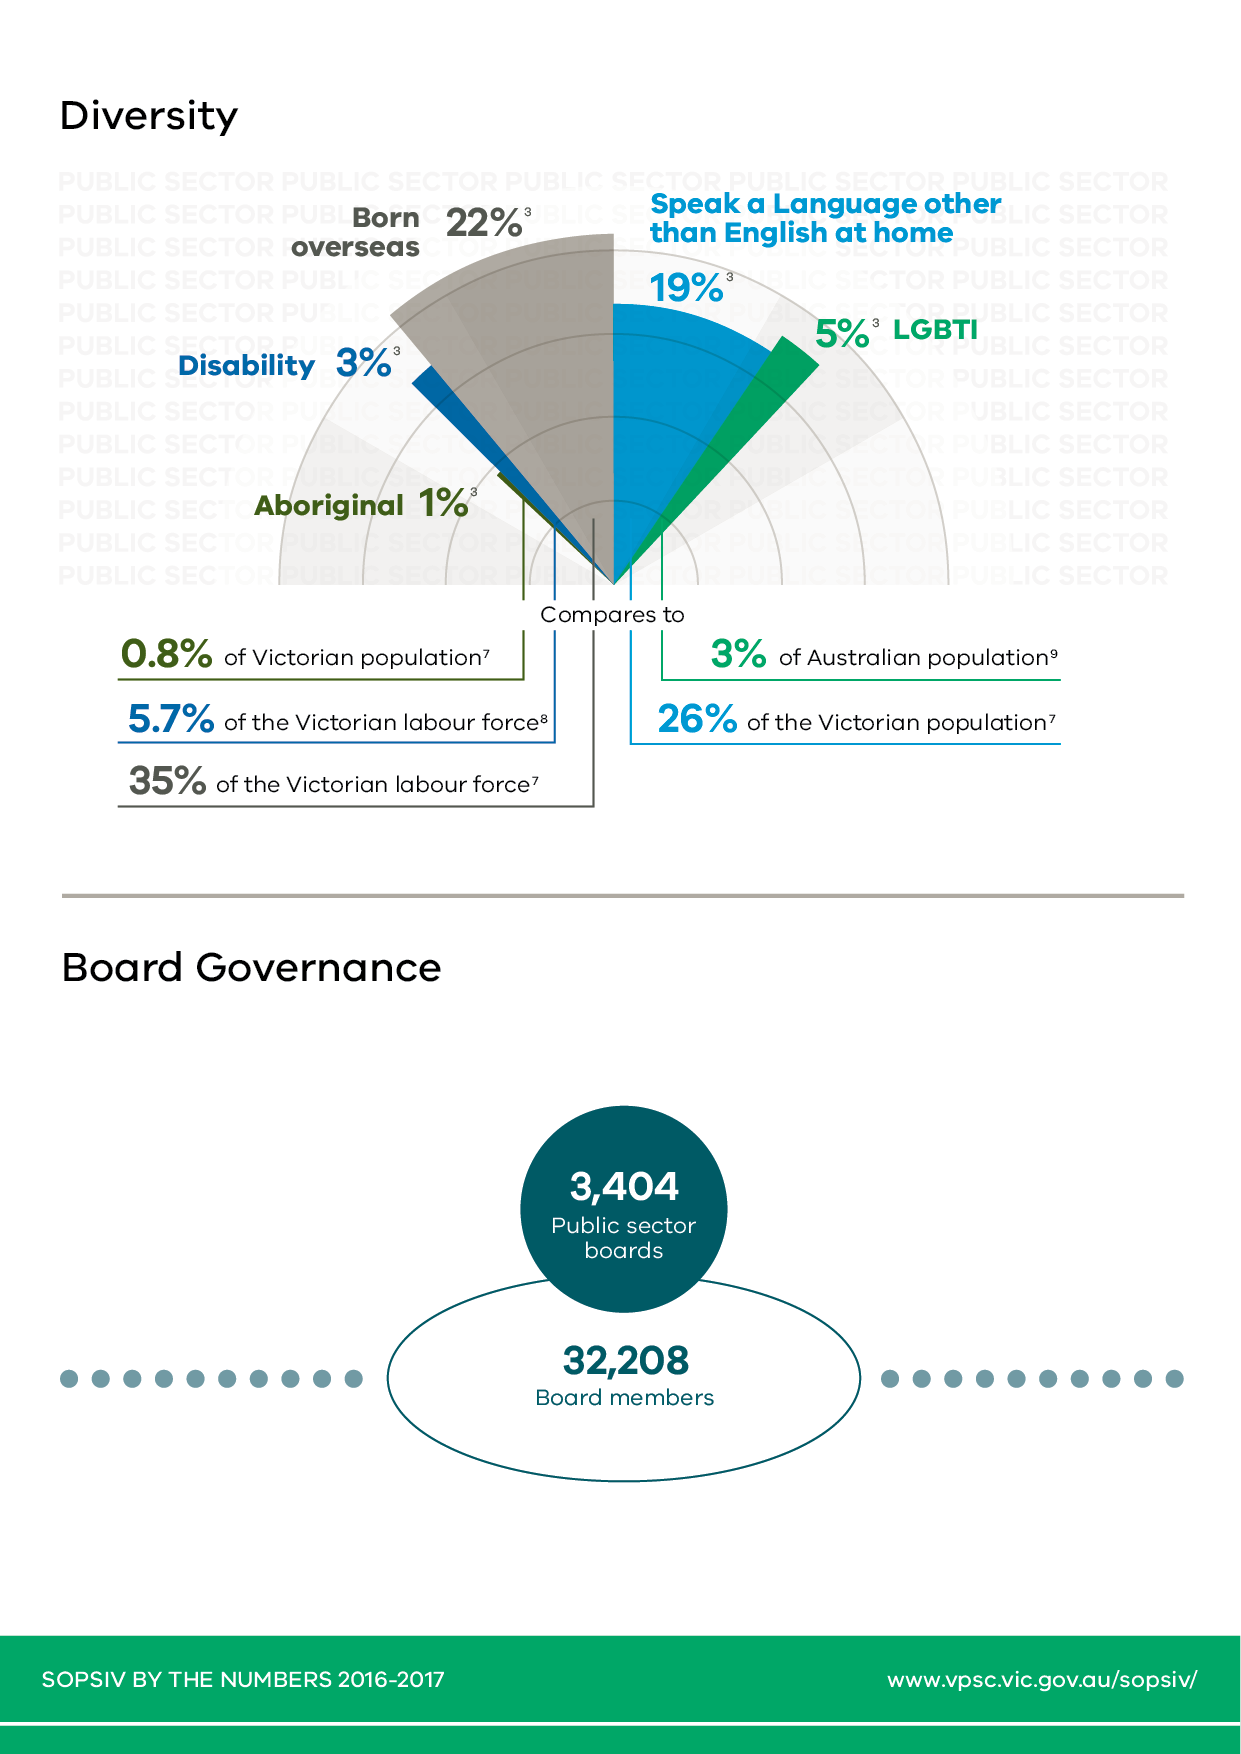 Page 4 of 5 pages of infographic representations of the statistical highlights from the State of the Public Sector in Victoria 2016-2017 report.